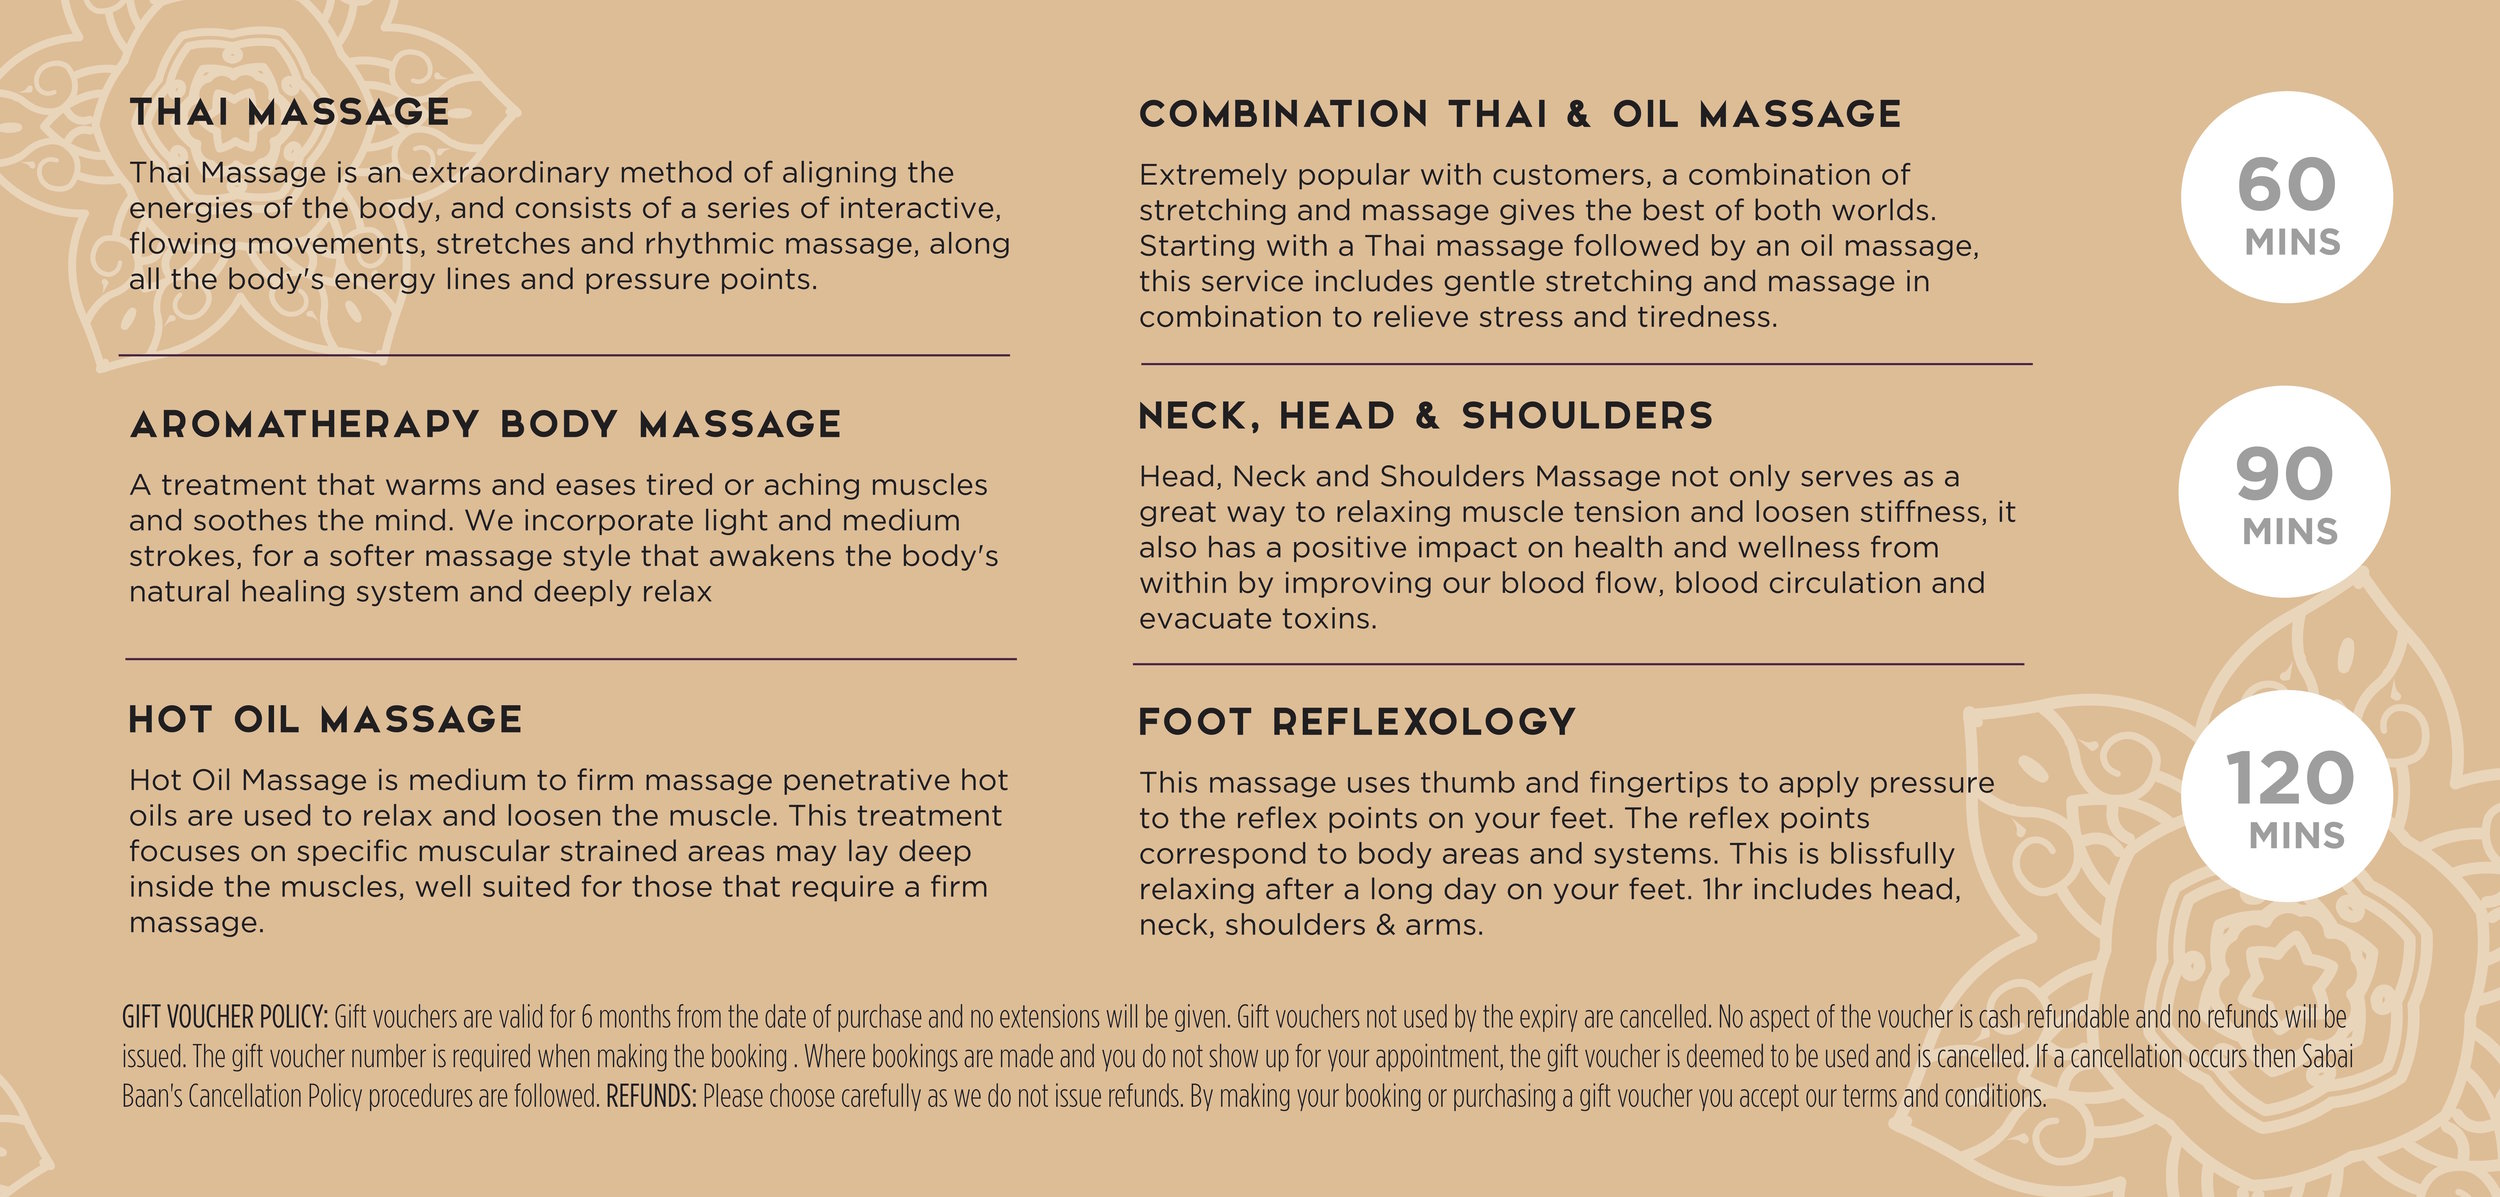 Sabai Baan Thai Massage Gift Voucher BACK.jpeg